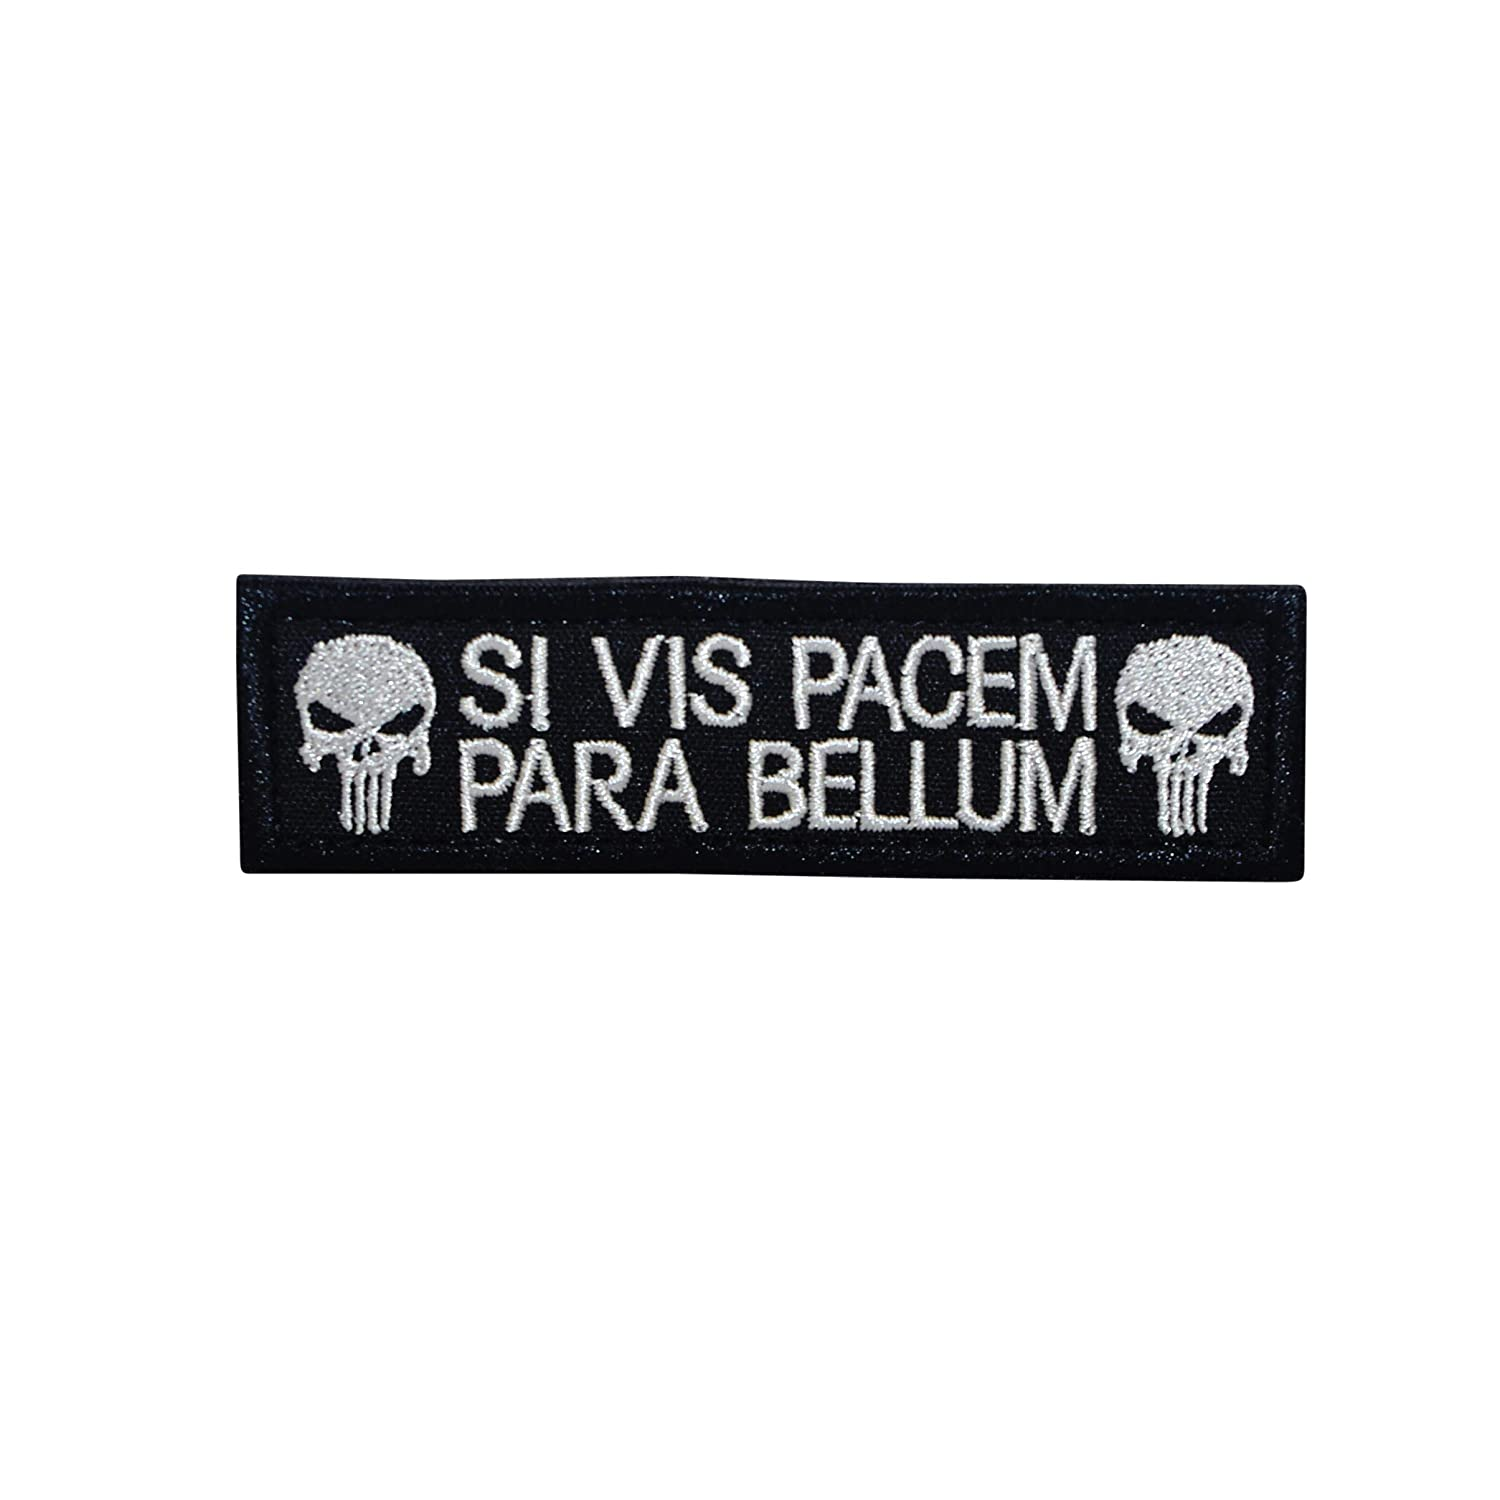 Cobra Tactical Solutions Besticktes Patch SI Vis Pacem para Bellum Punisher with Hook /& Loop for Cosplay//Airsoft Paintball